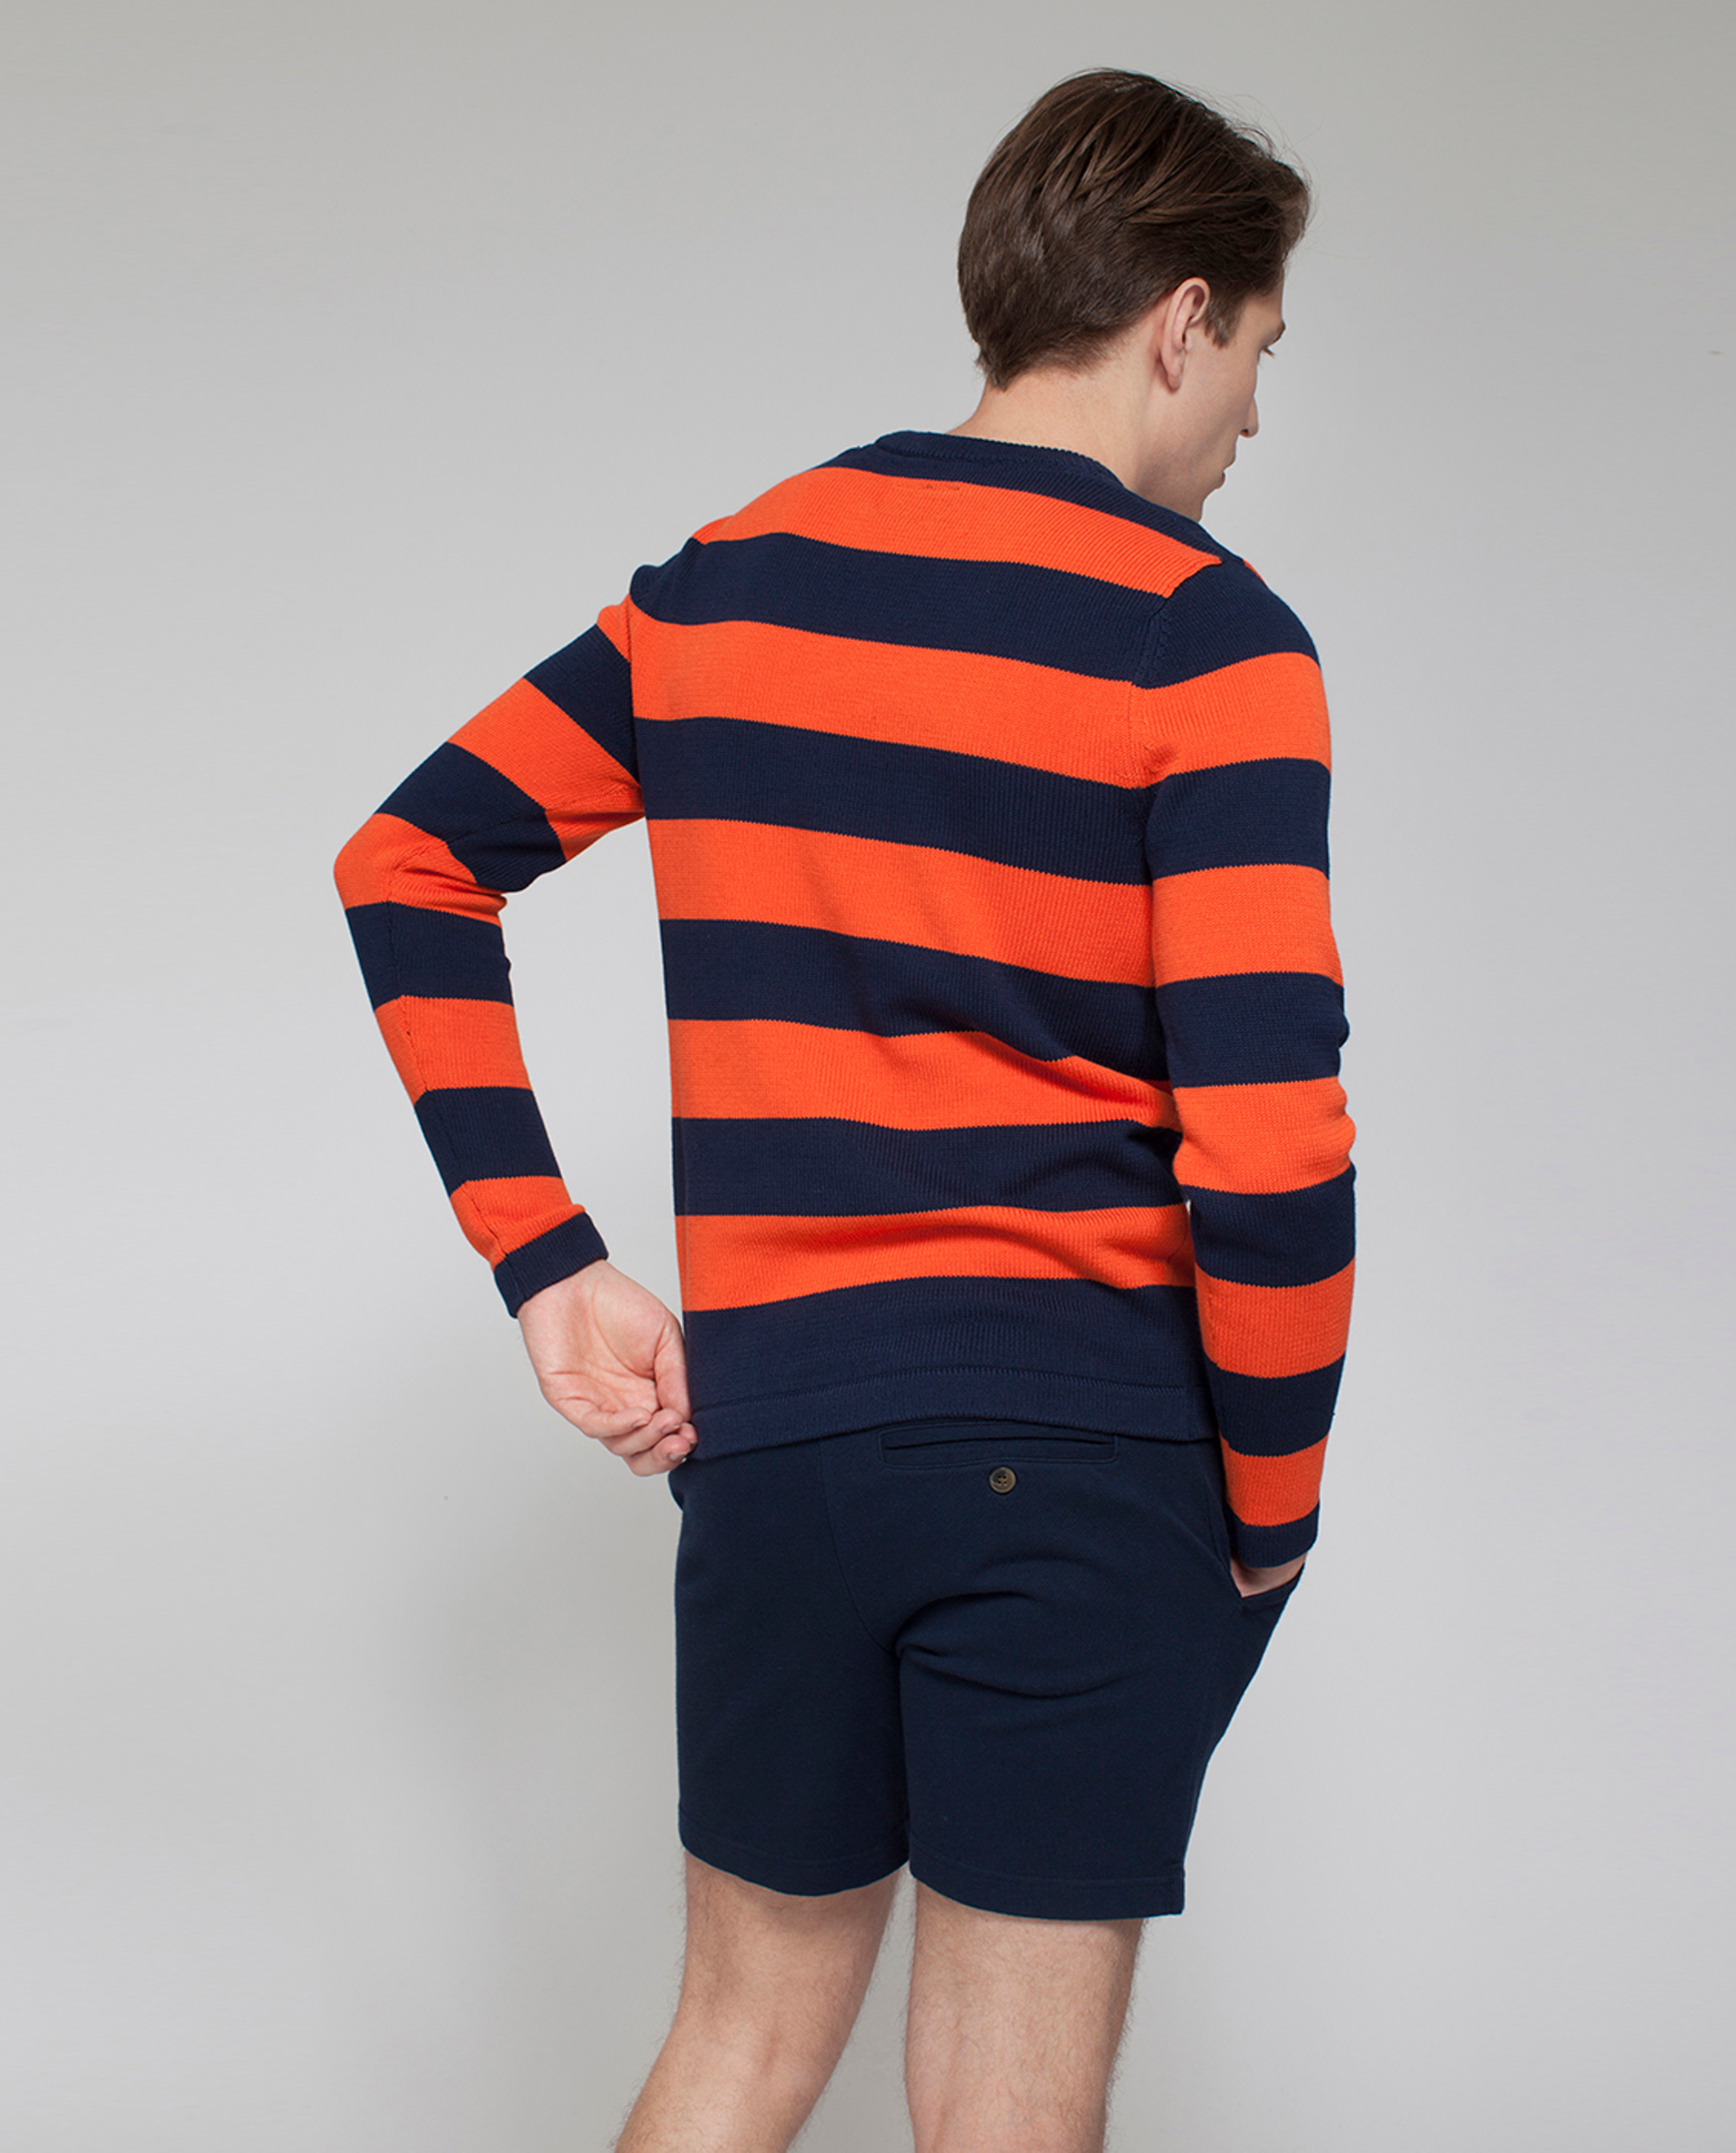 Lincoln Striped Sweater, Orange/Blue